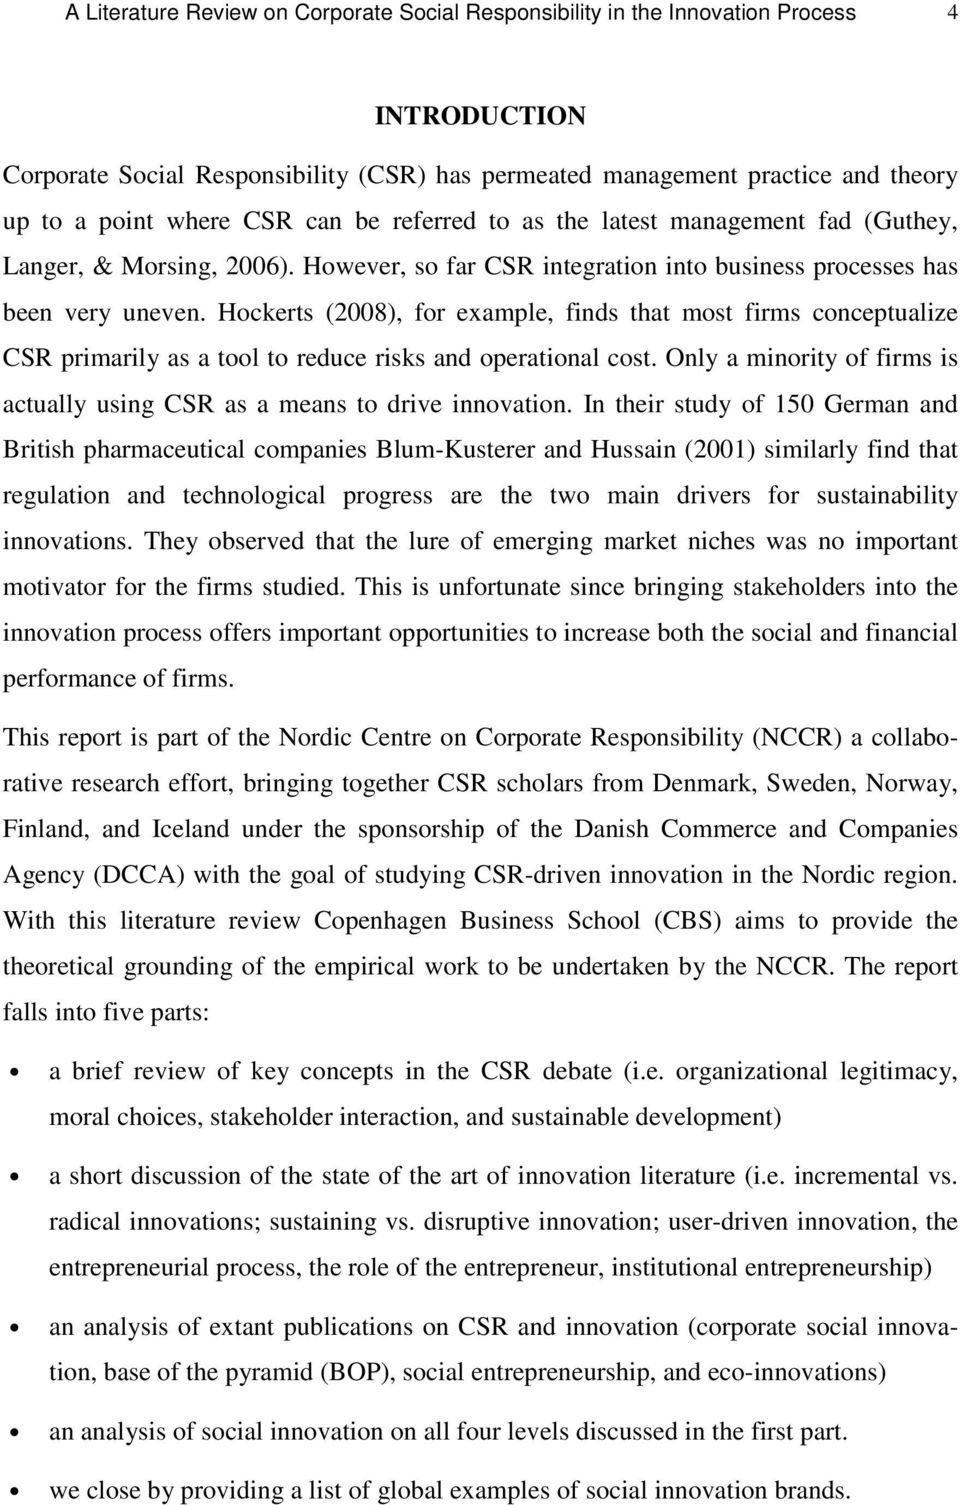 A Literature Review on Corporate Social Responsibility in